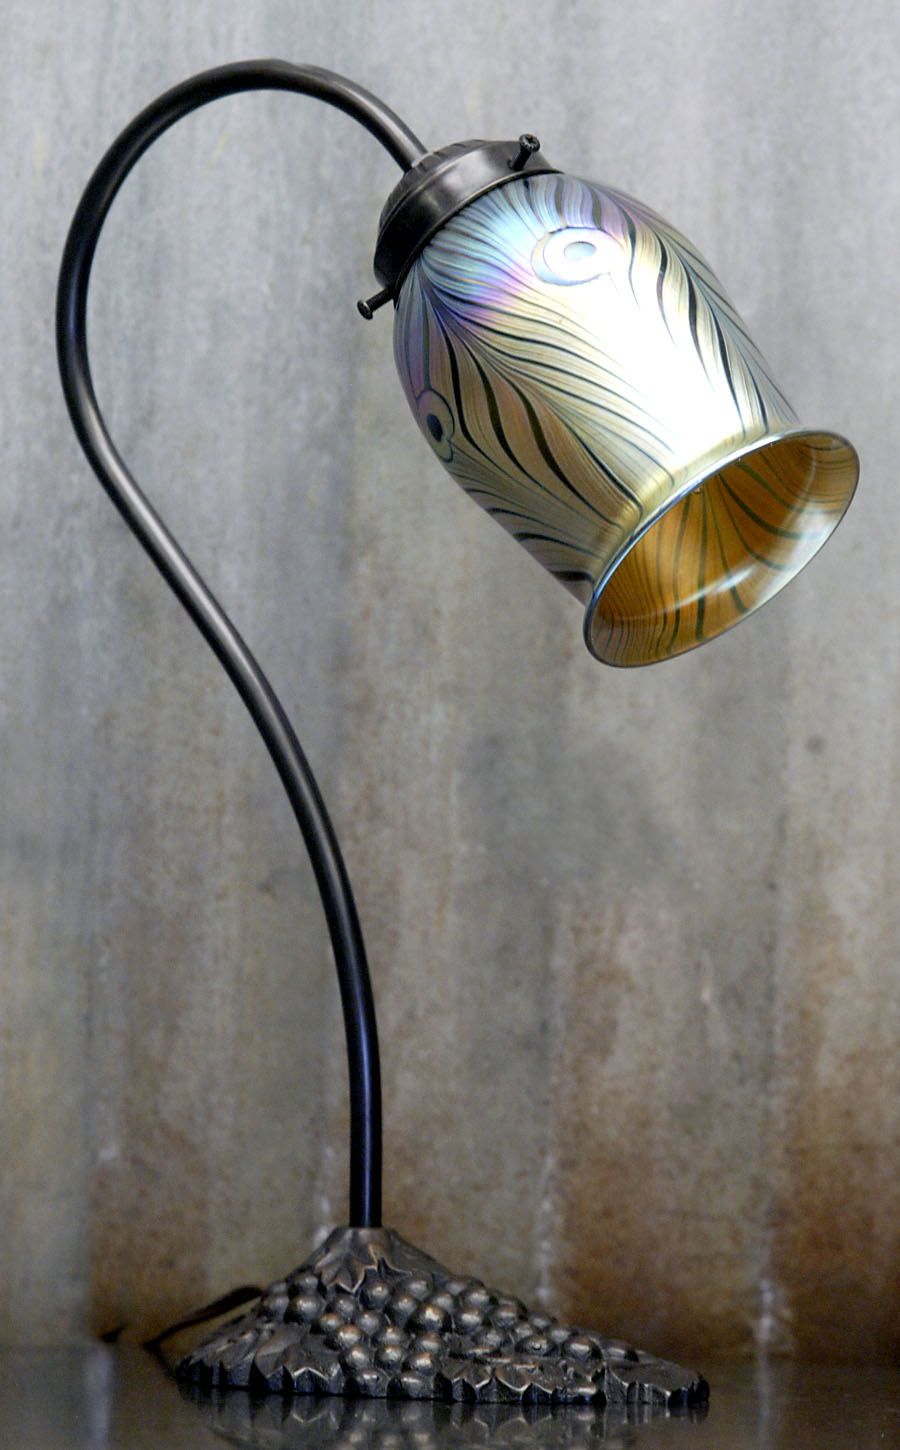 752P U2013 Gold Peacock Tiffany Tulip   2.25u201d Fitter   $220.00 U2013 5u201dH X 3.5u201dD. * Shade With Gooseneck Lamp ...